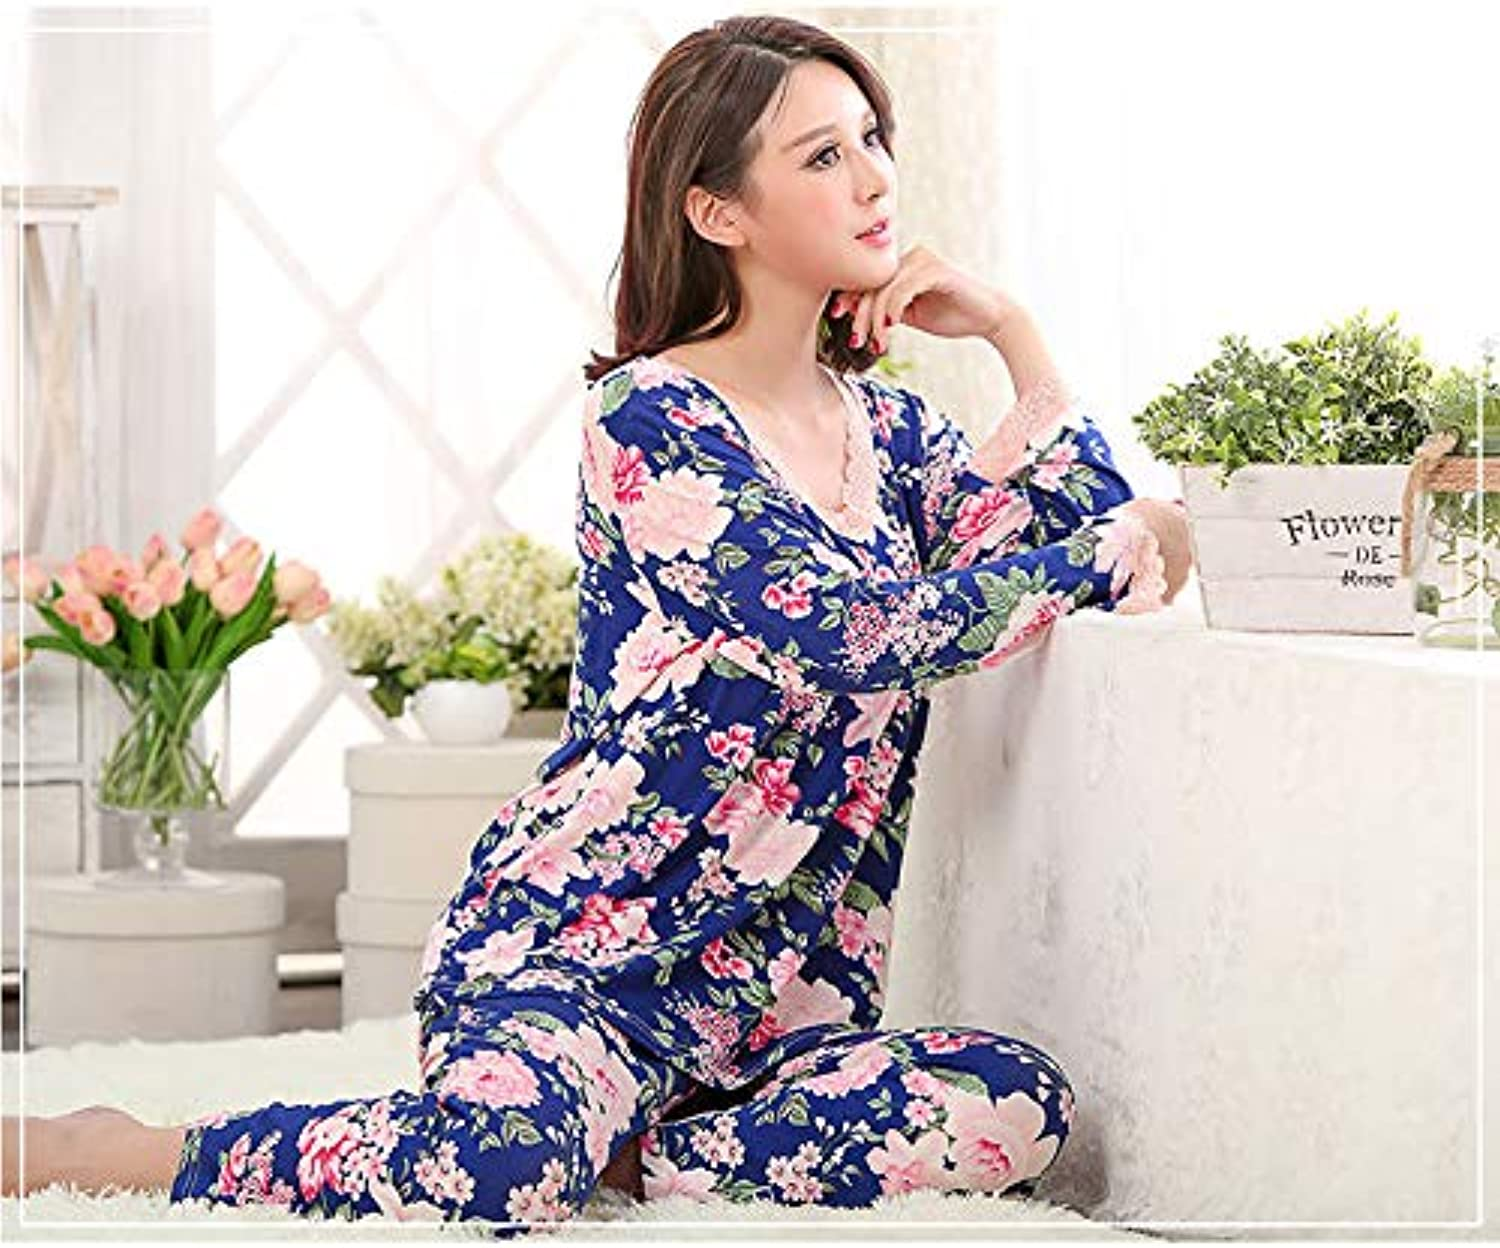 IANXI Home Spring and Autumn Modal Ladies Cotton LongSleeved MiddleAged Pajamas Set XL MiddleAged Mother Home Service (Size   XXL140160)